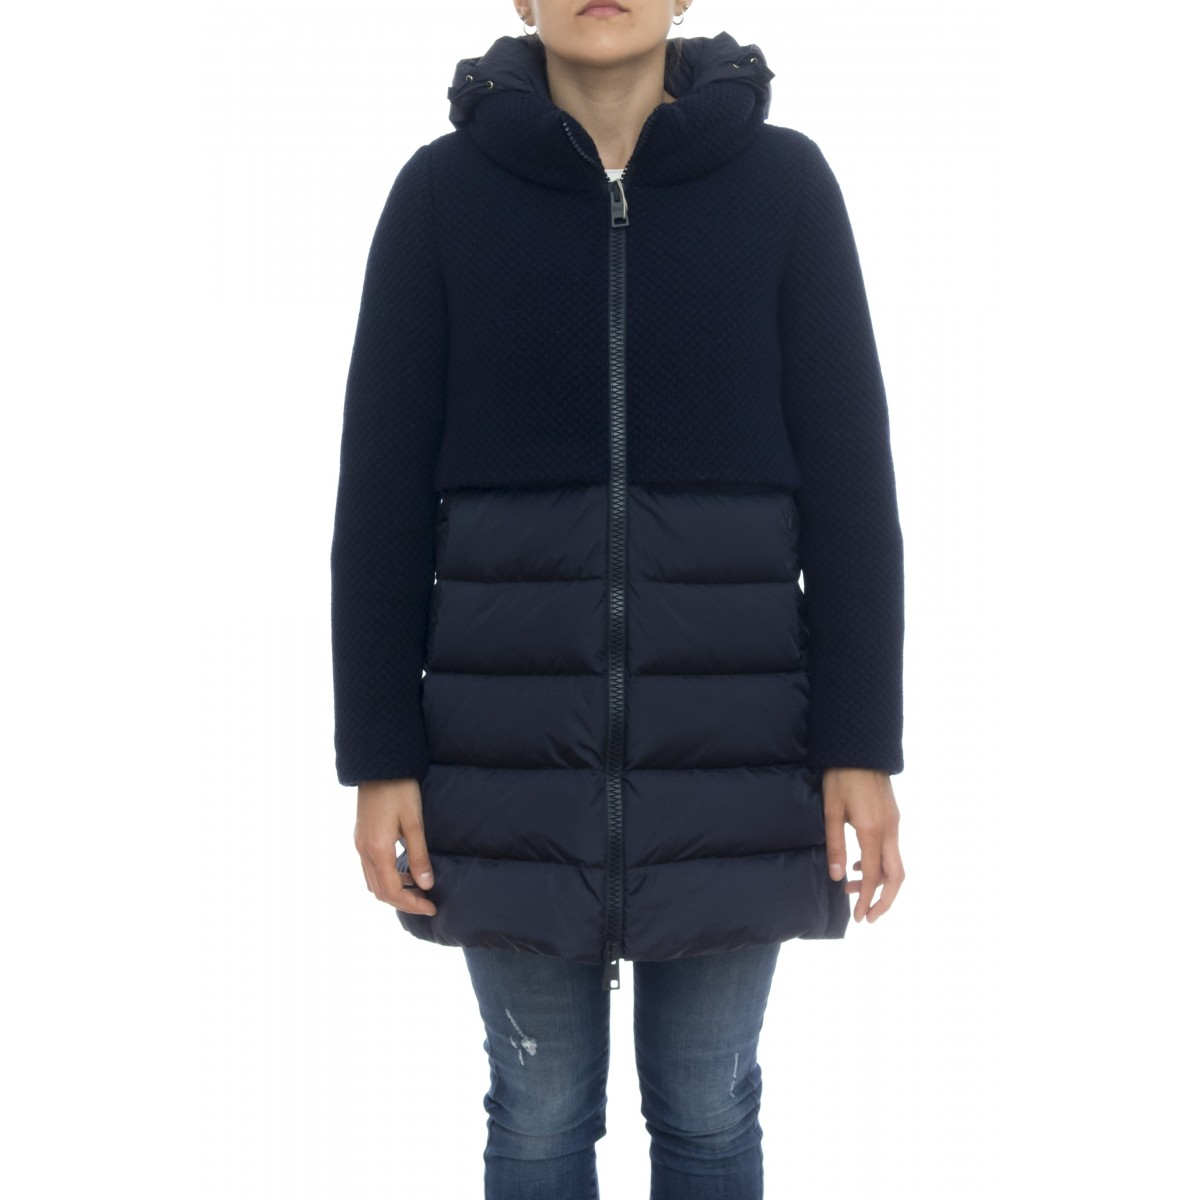 Down jacket - Pi0822d 33220 grain of rice